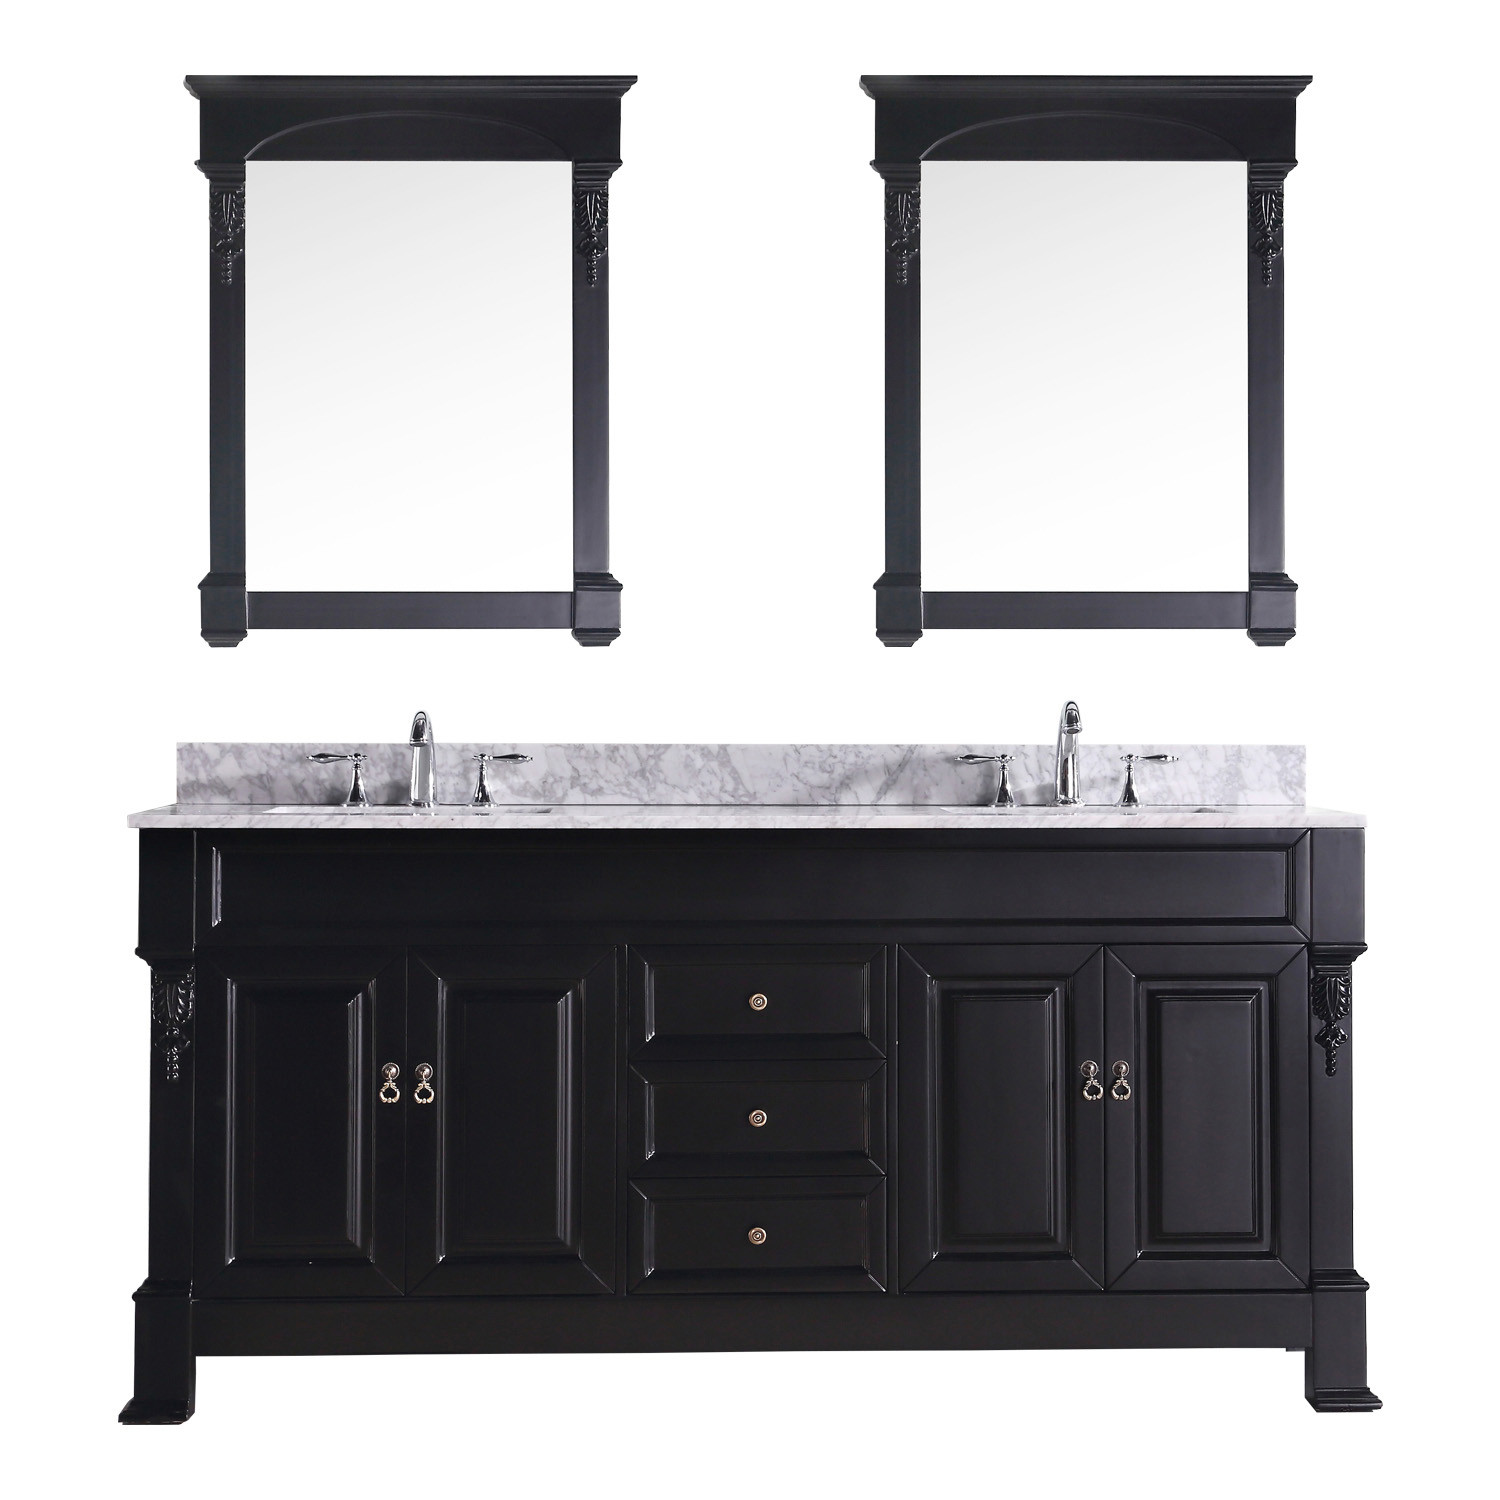 "Virtu GD-4072-WMSQ-DW-002 72"" Double Bathroom Vanity with Chrome Faucet"